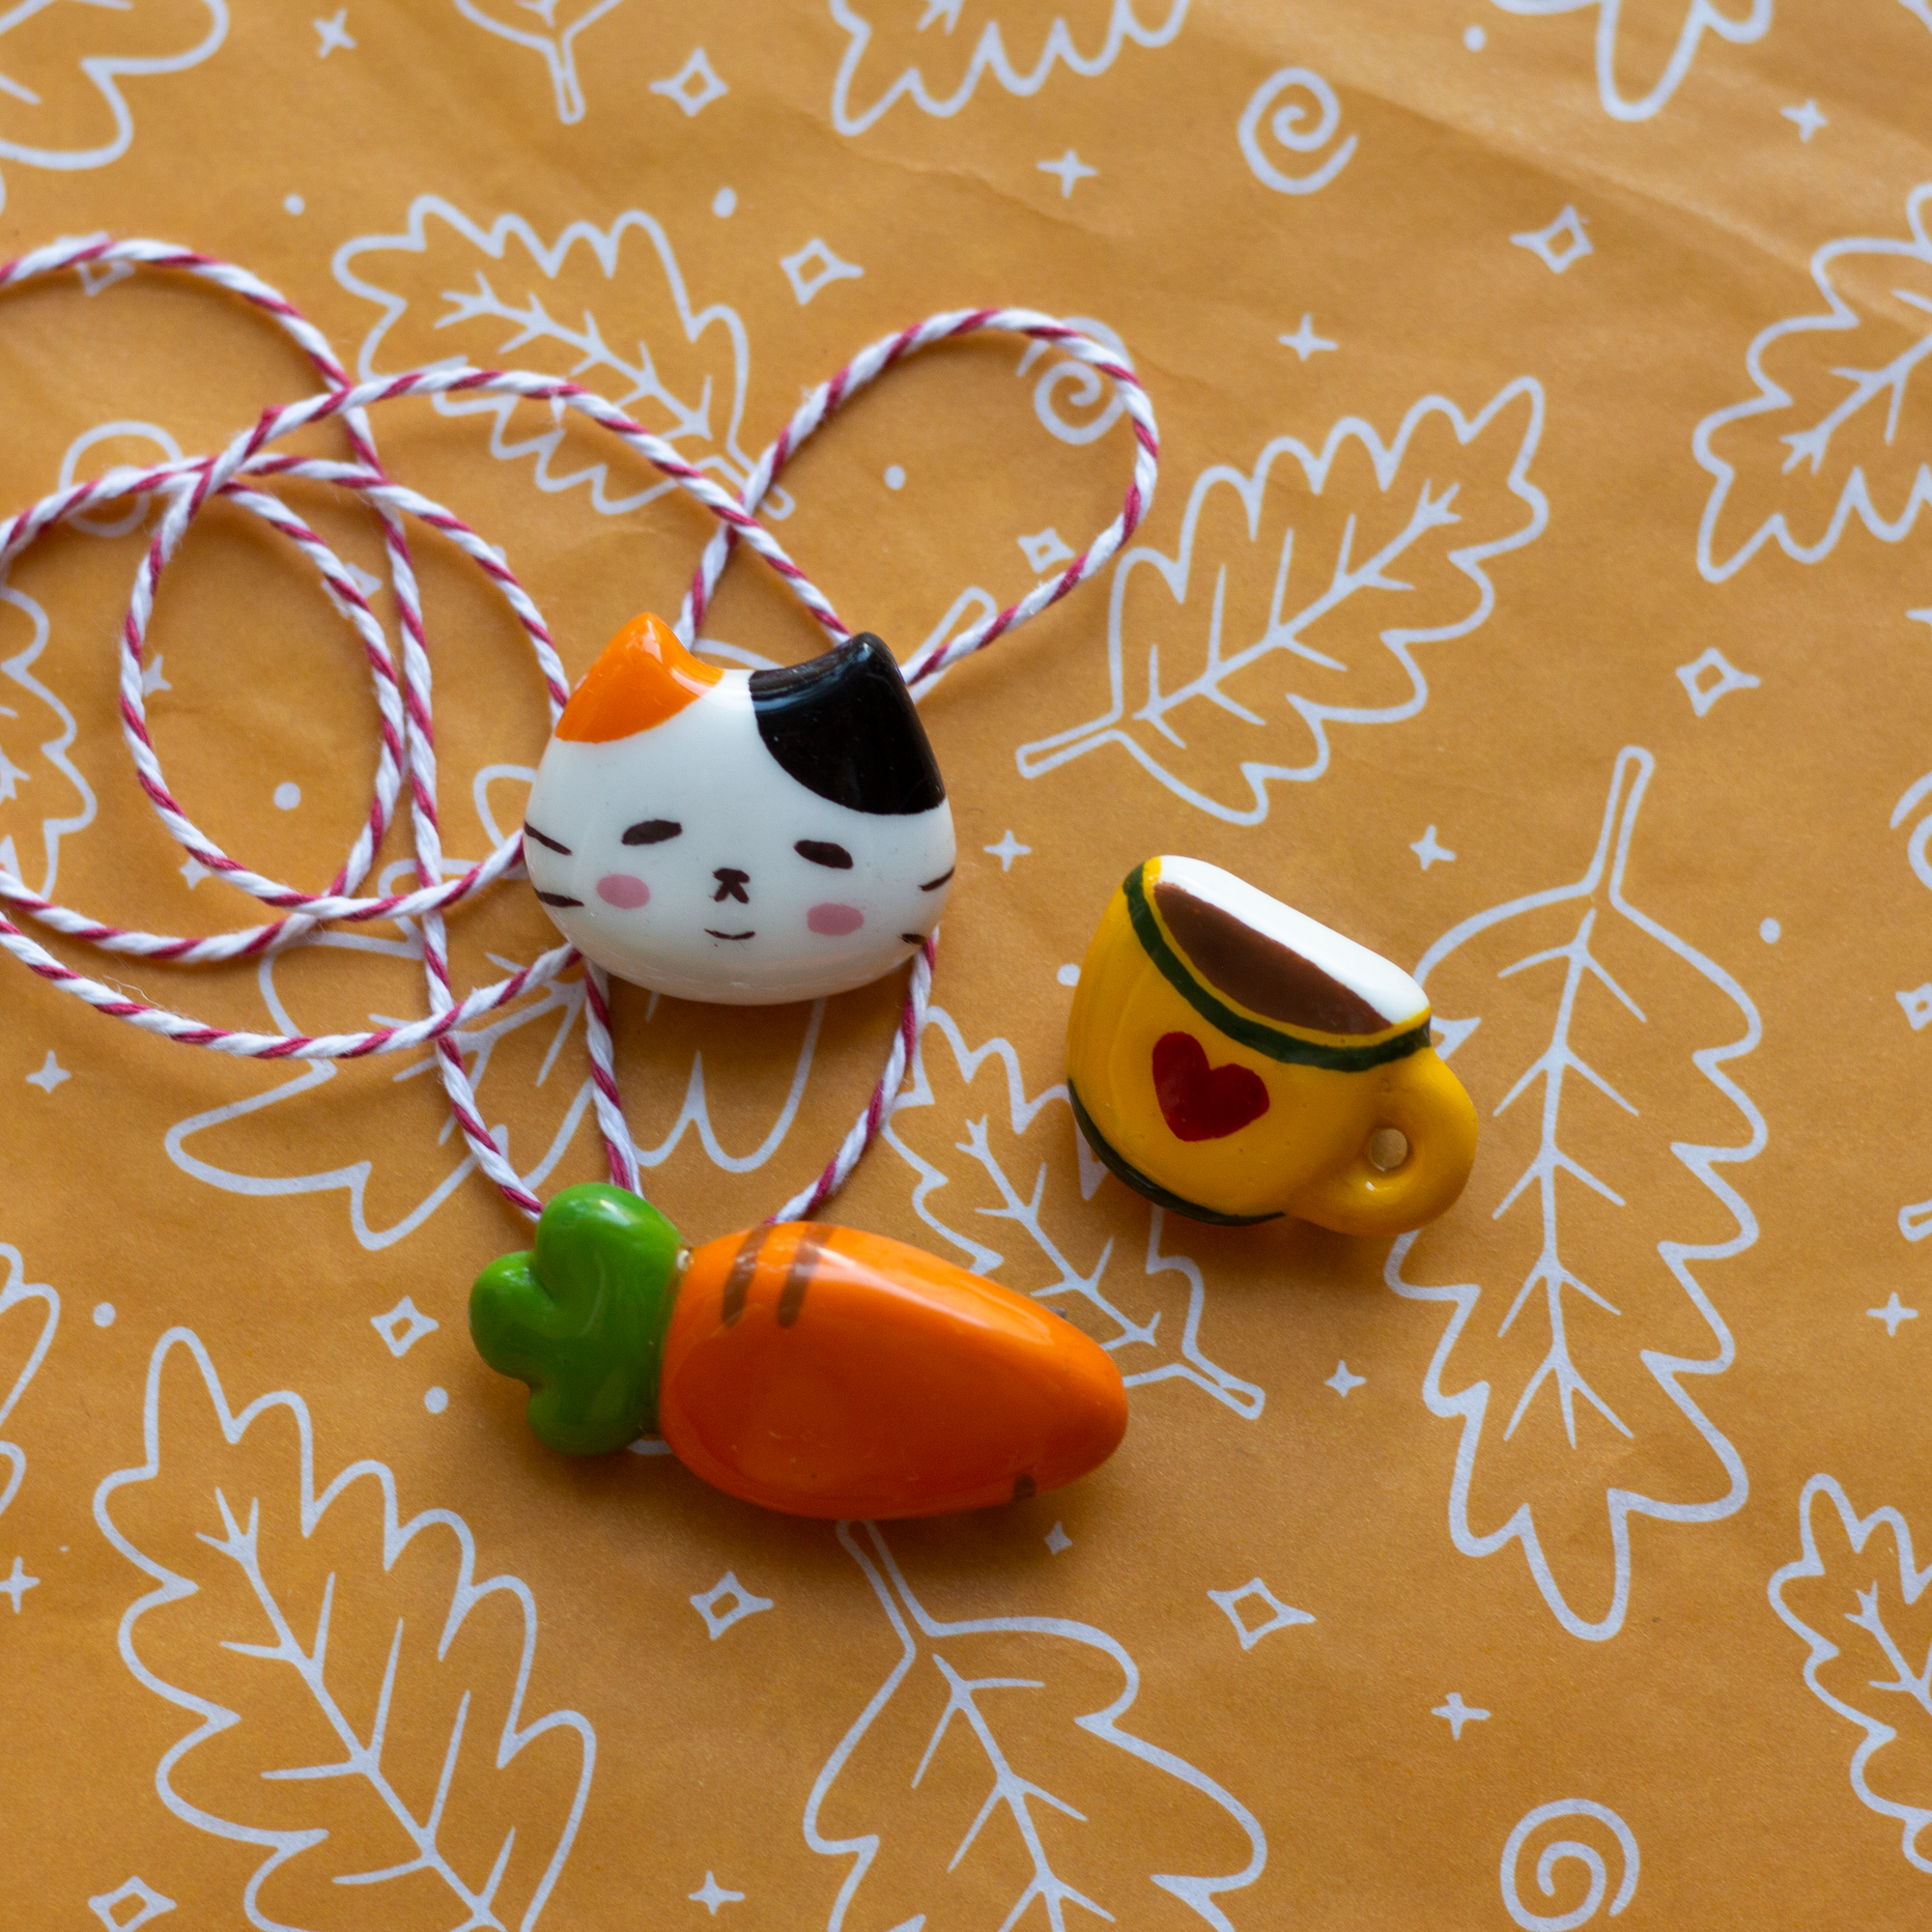 Seocat: Sharing Happiness through Handmade Trinkets